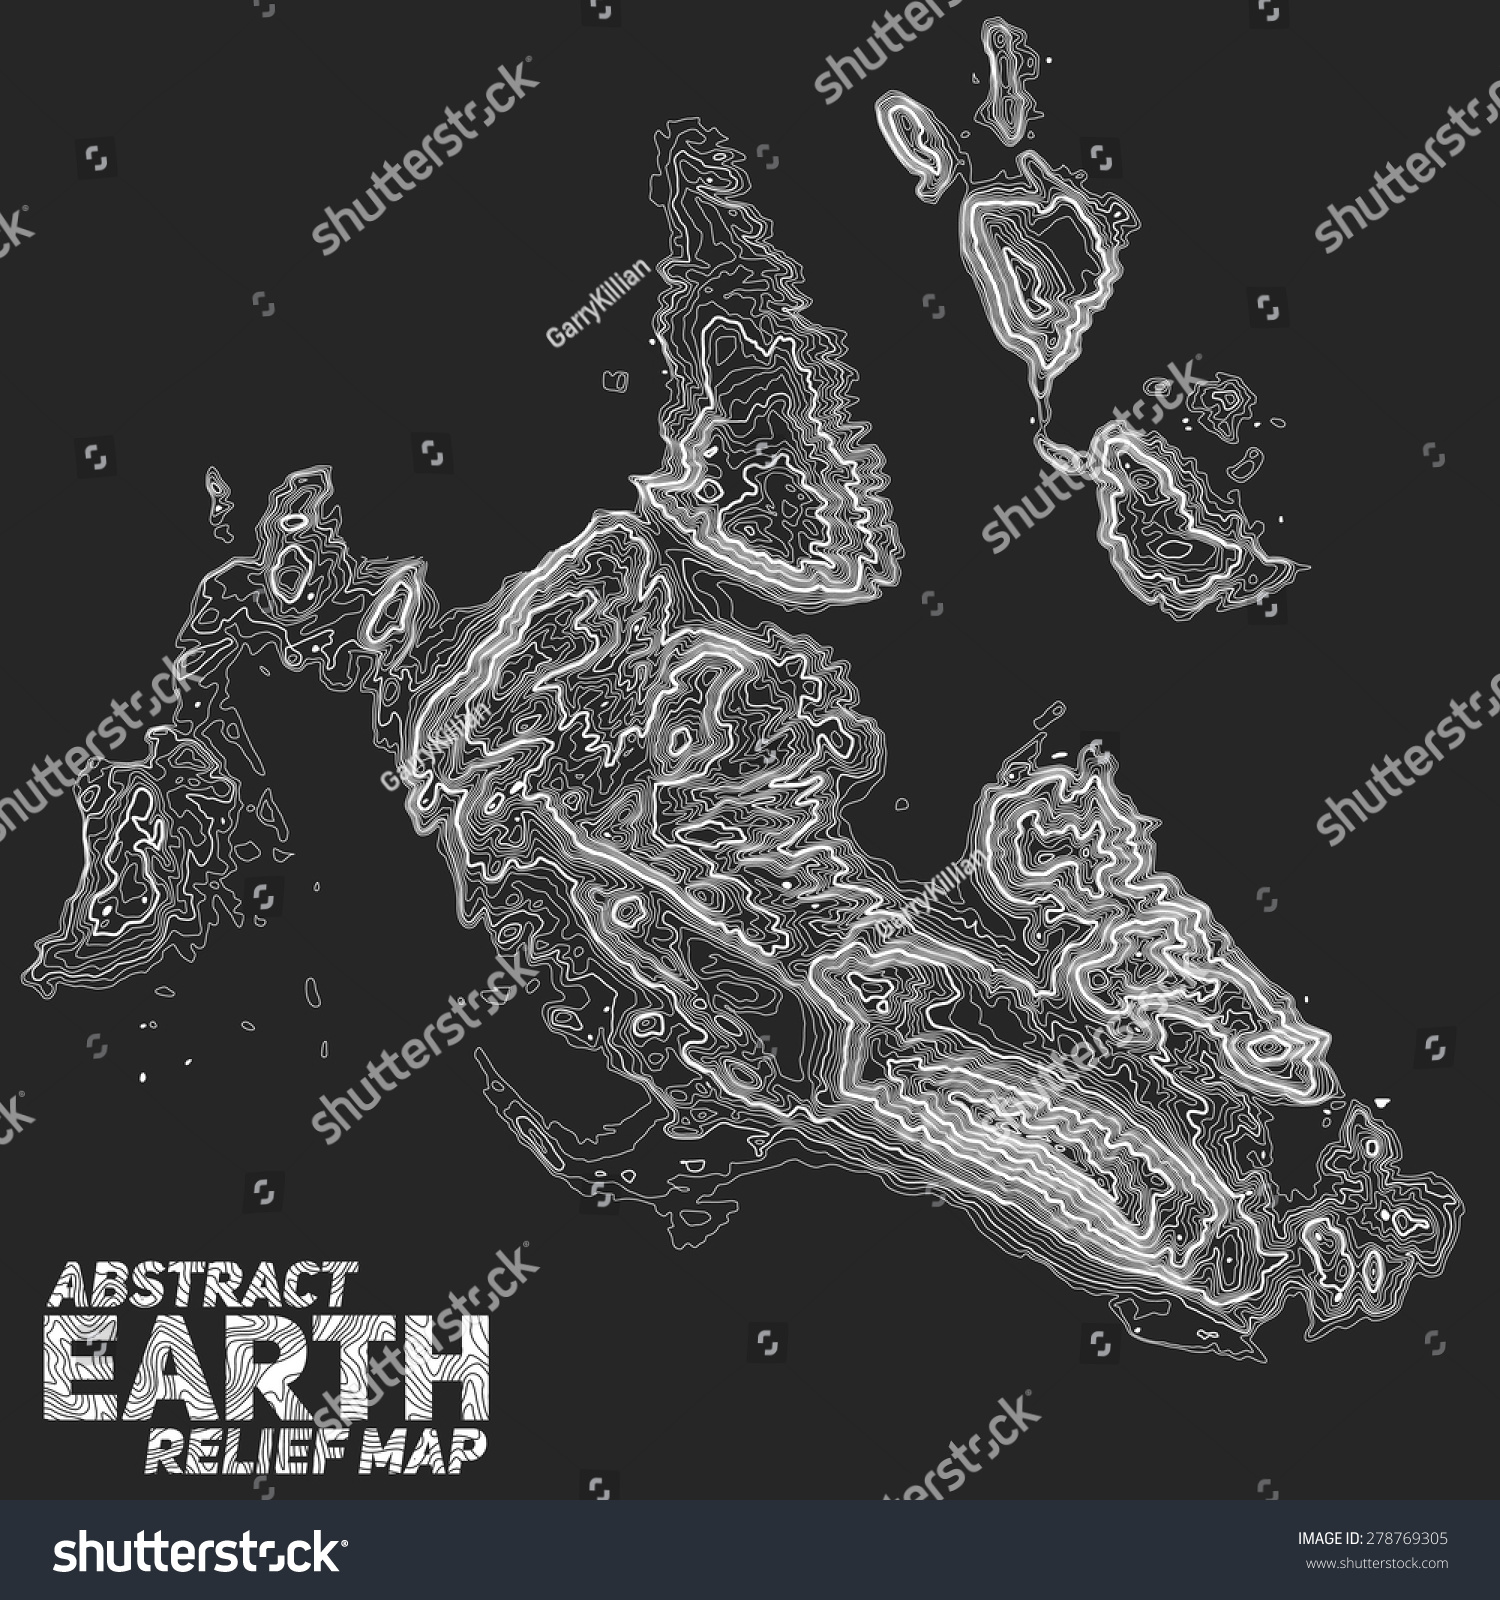 Vector Abstract Earth Relief Map Generated Stock Vector